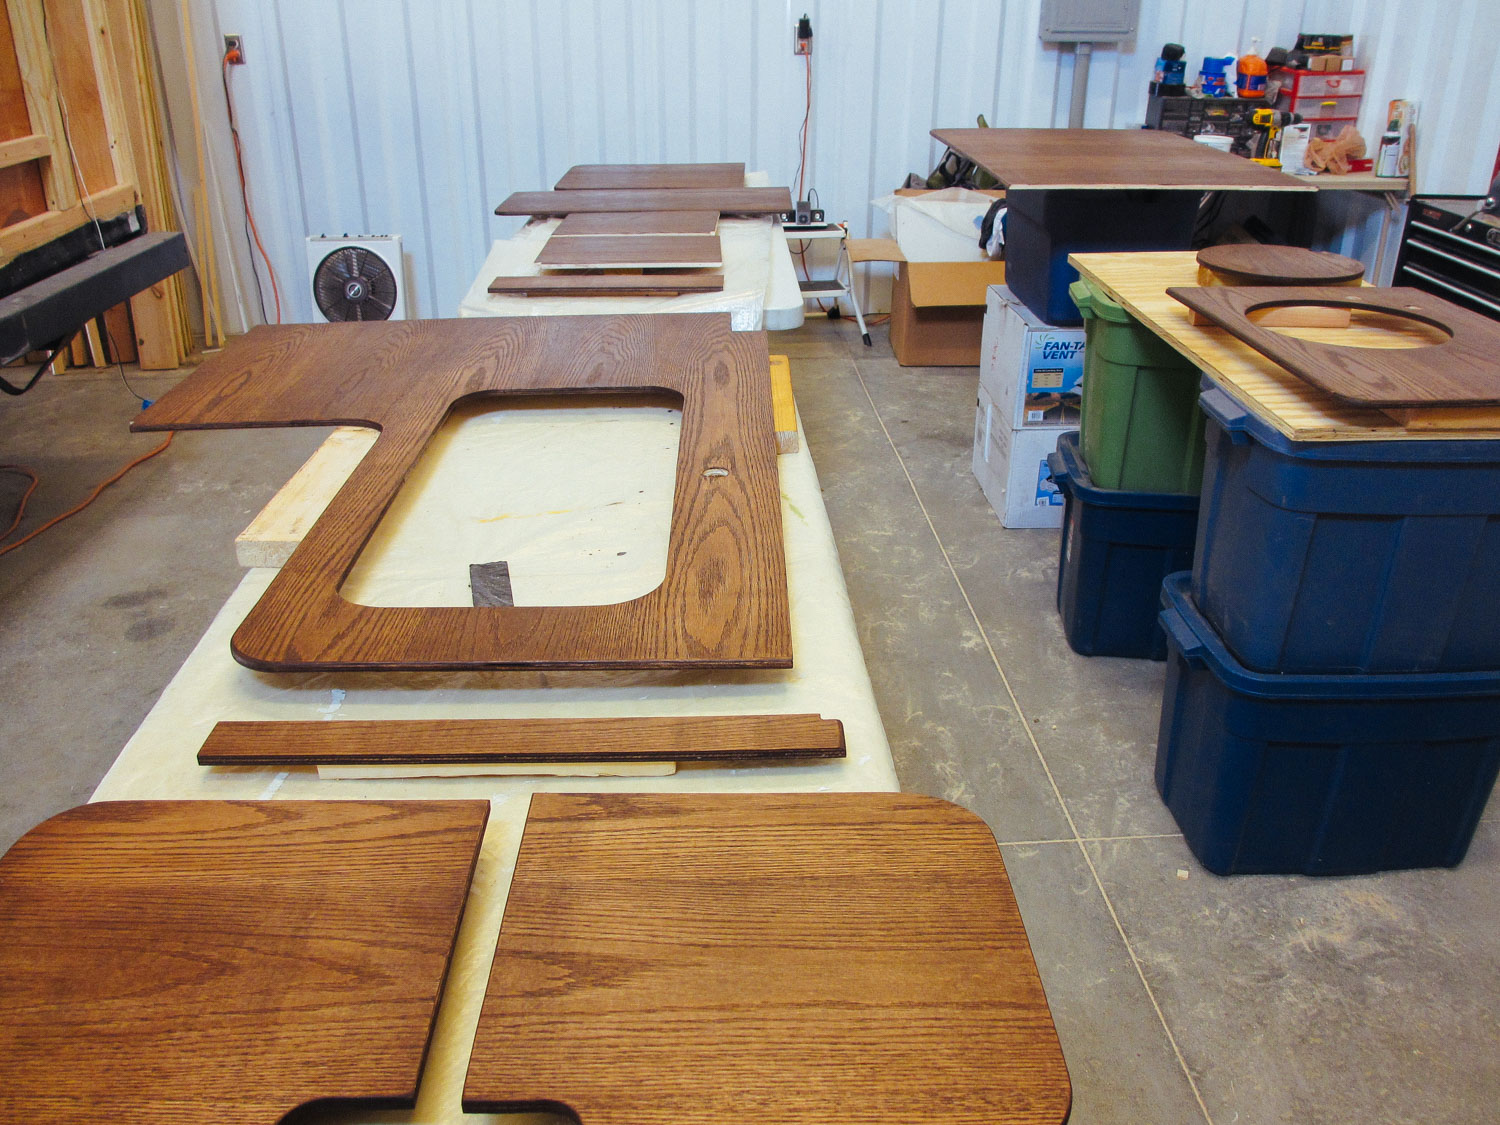 We cleaned, sanded, stained and polyurethaned the new countertops.